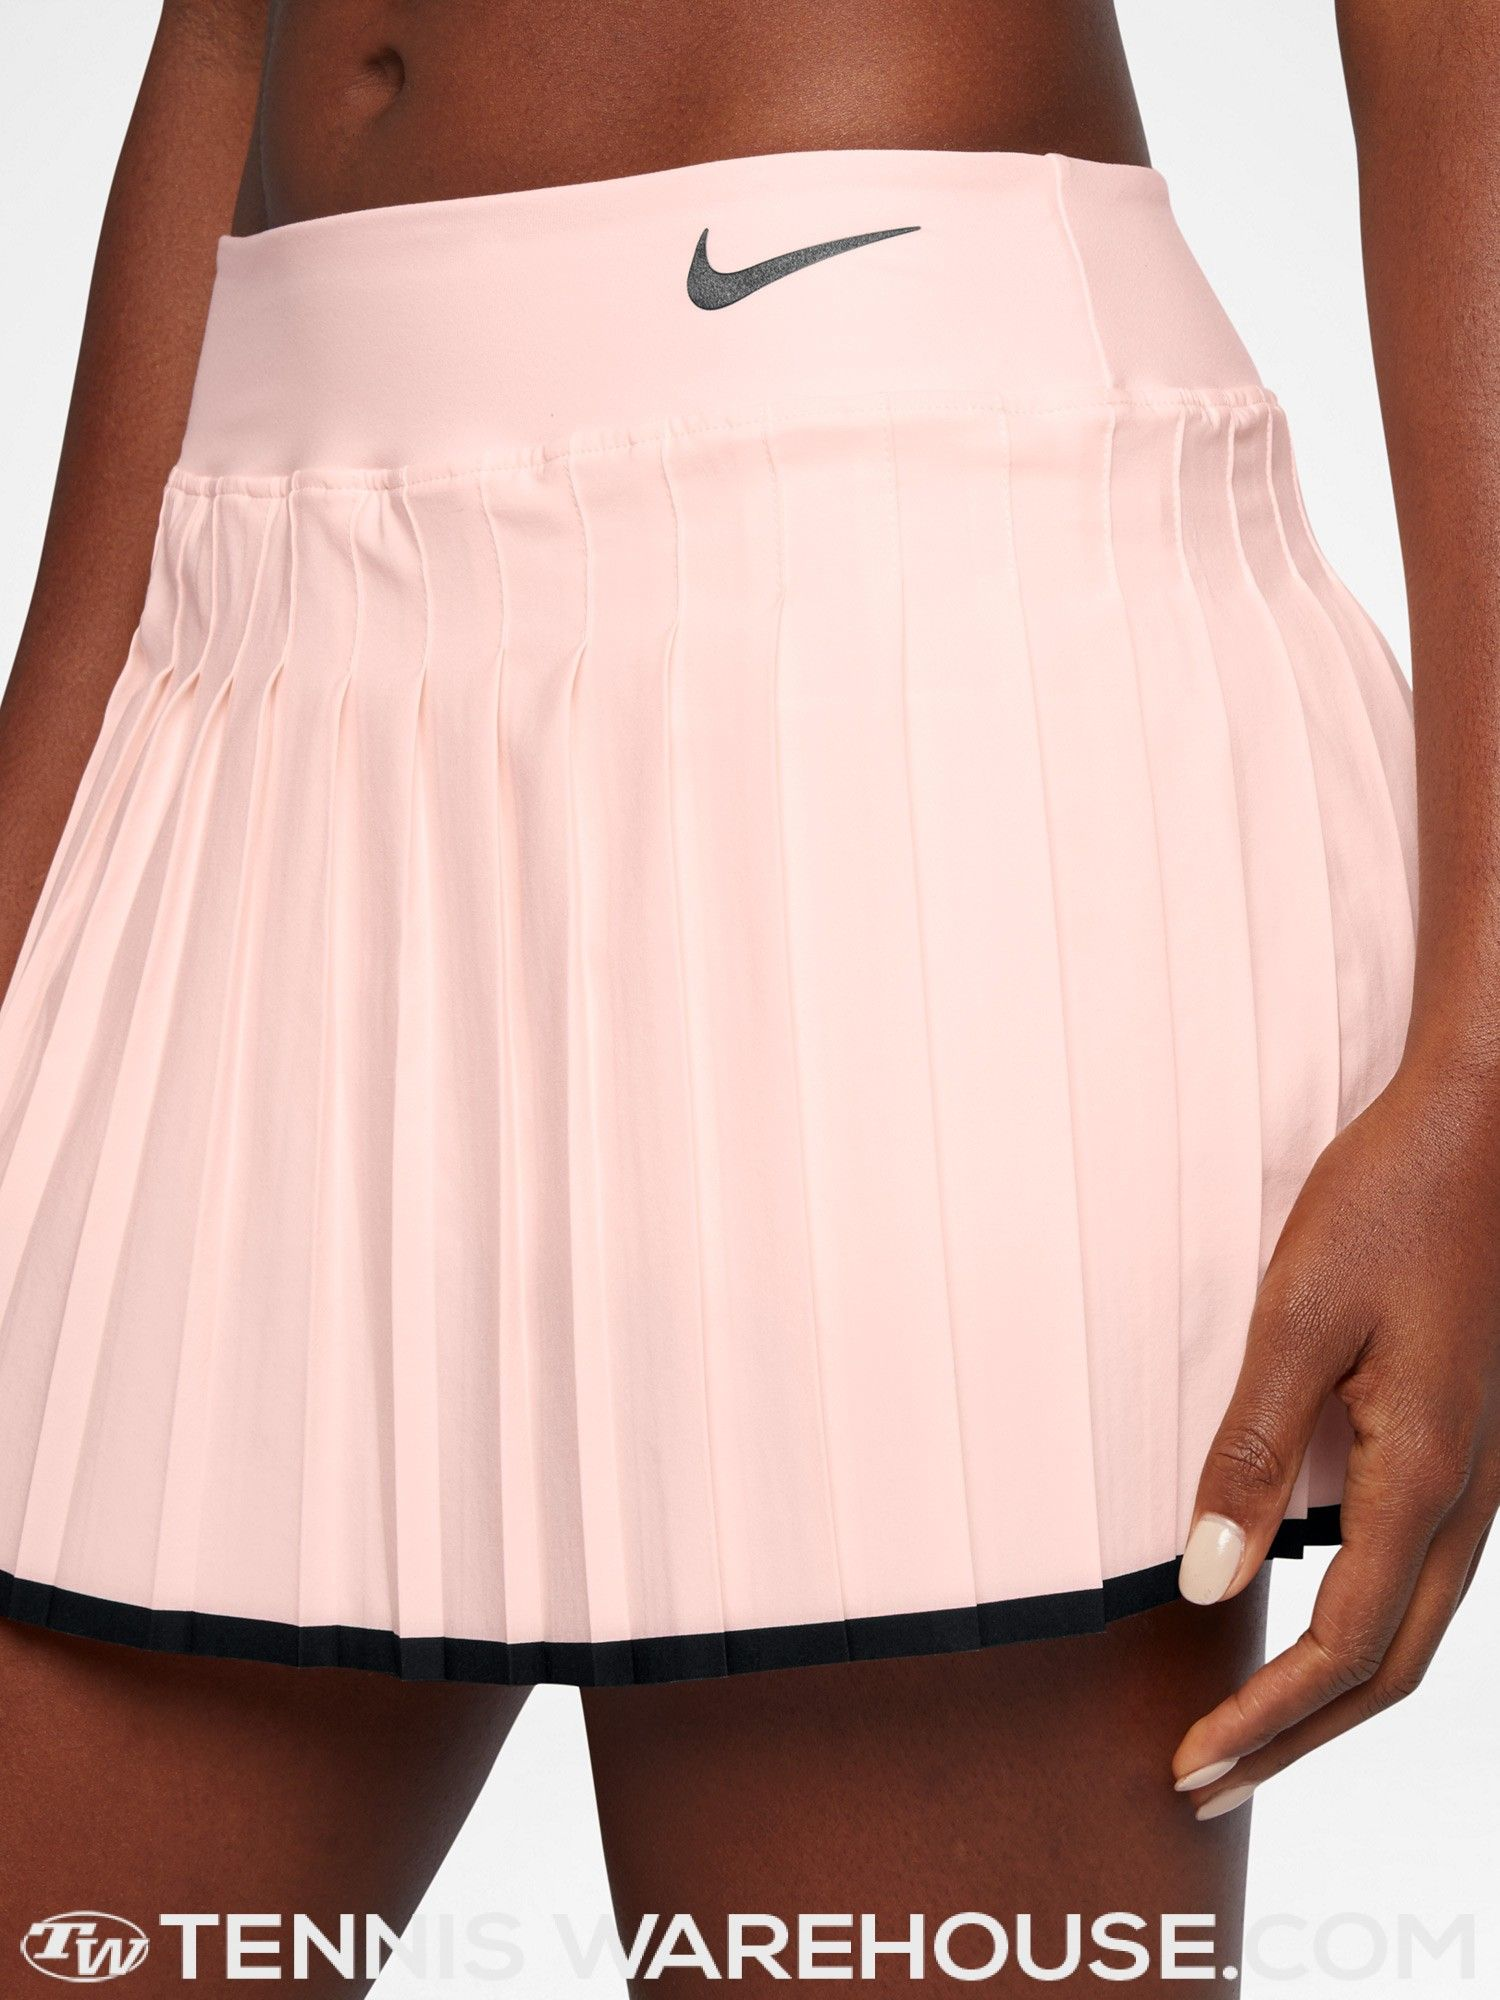 Nike Women S Fall Victory Skirt Tennis Outfit Women Tennis Clothes Tennis Dress